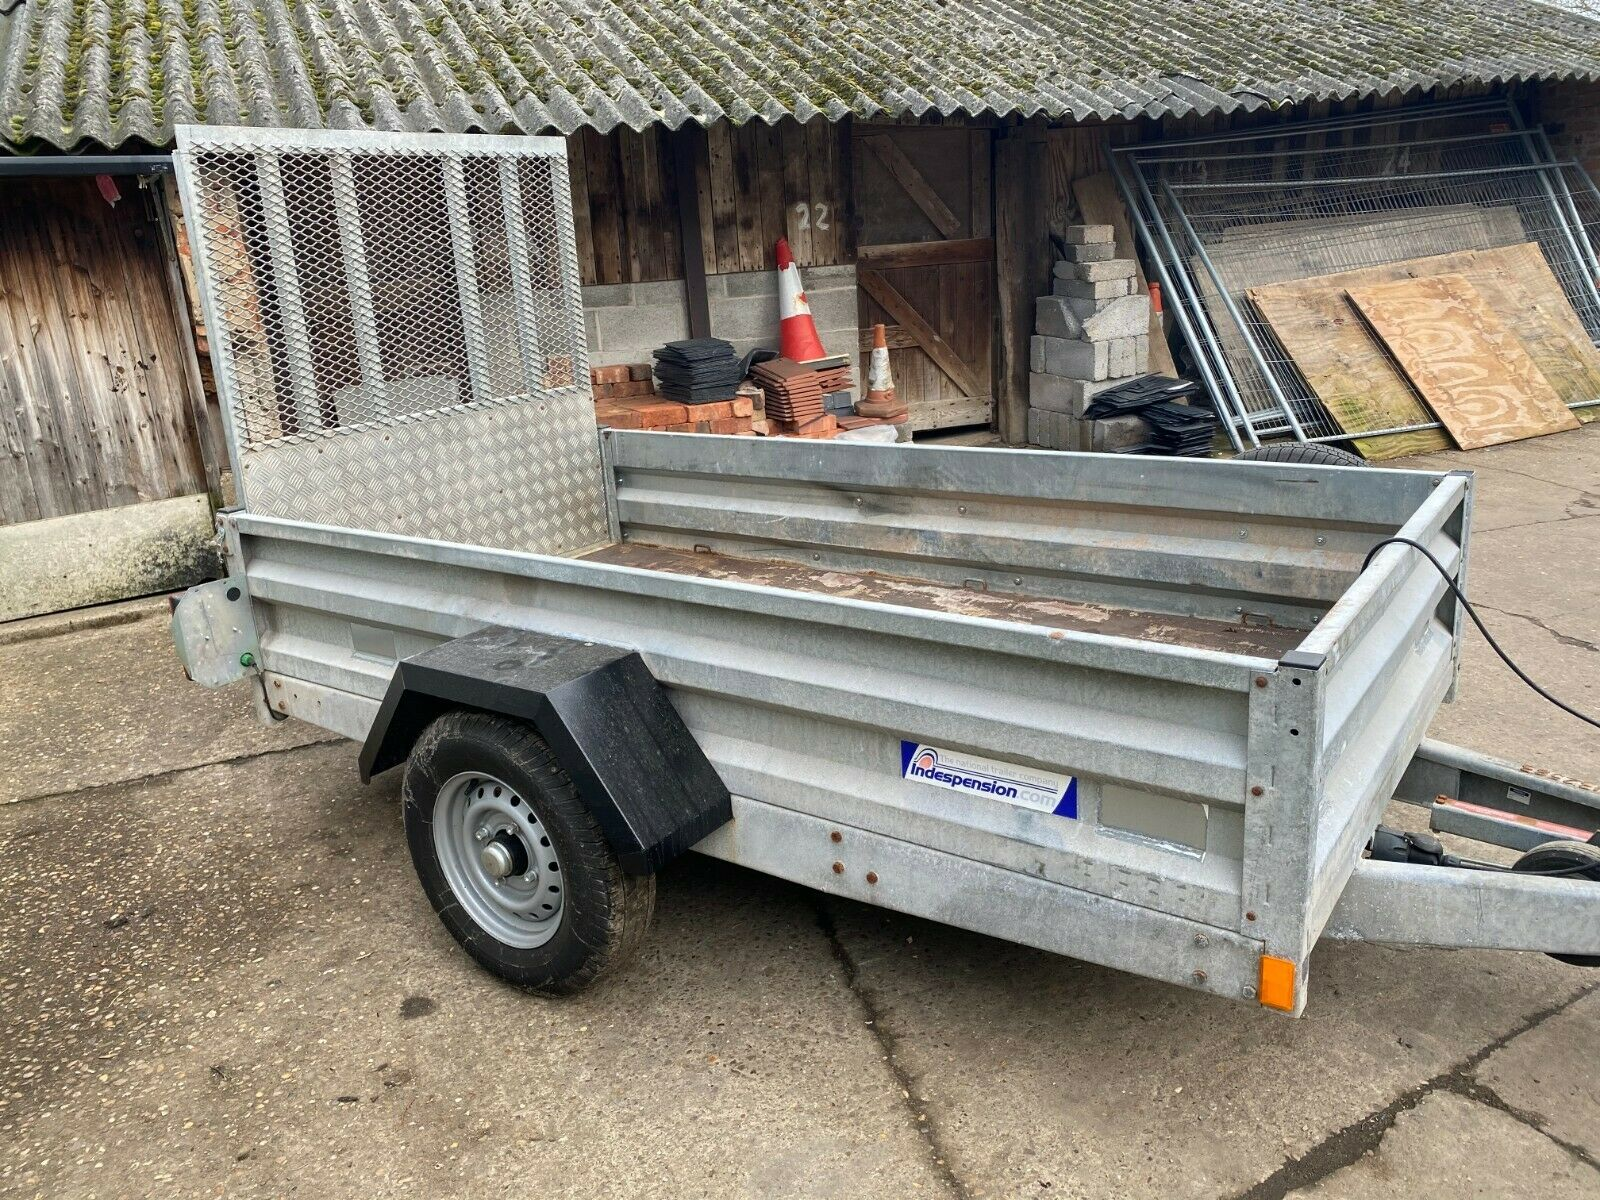 INDESPENSION HEAVY DUTY TRAILER, DROP DOWN TAILGATE, YEAR 2012 *PLUS VAT* - Image 2 of 6